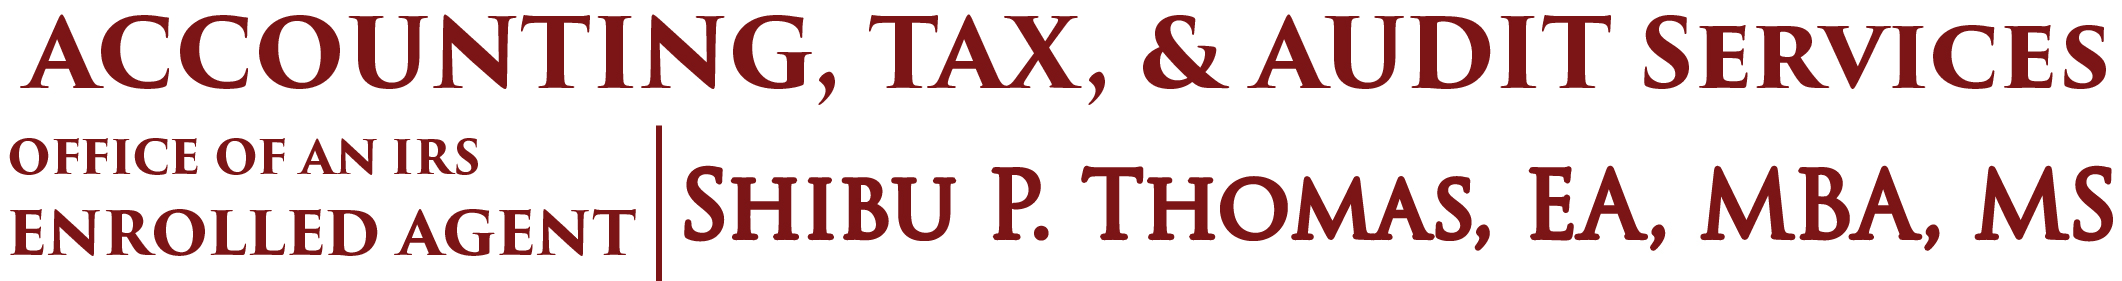 Staten Island, NY Accounting Firm | Estate Planning Page | Accounting, Tax, & Audit Services Shibu P. Thomas, EA, MBA, MS